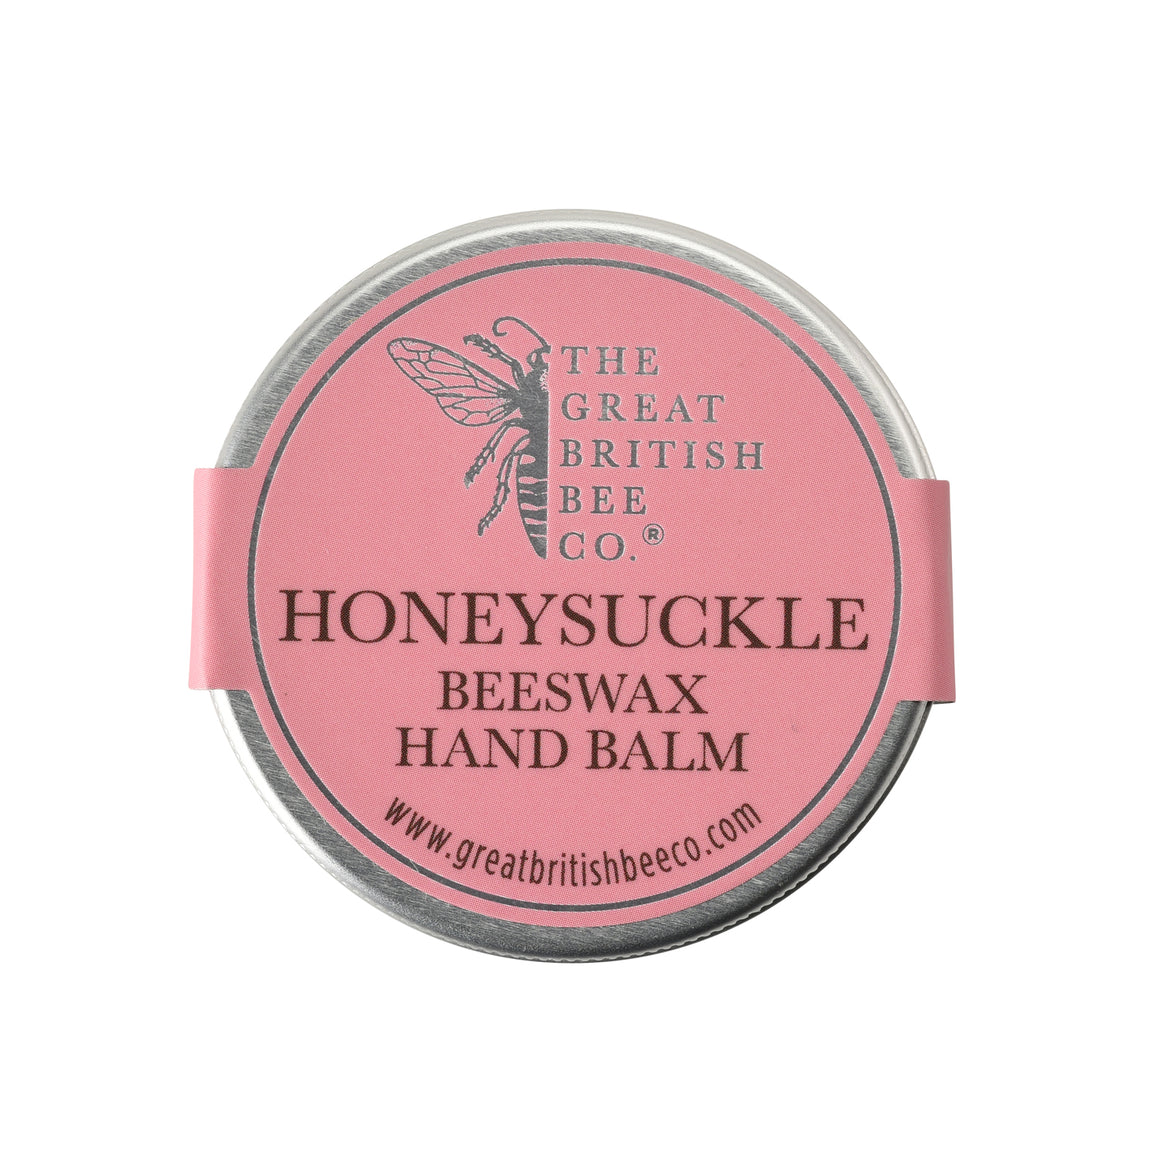 Honeysuckle Hand Balm 50g - Dry skin protection